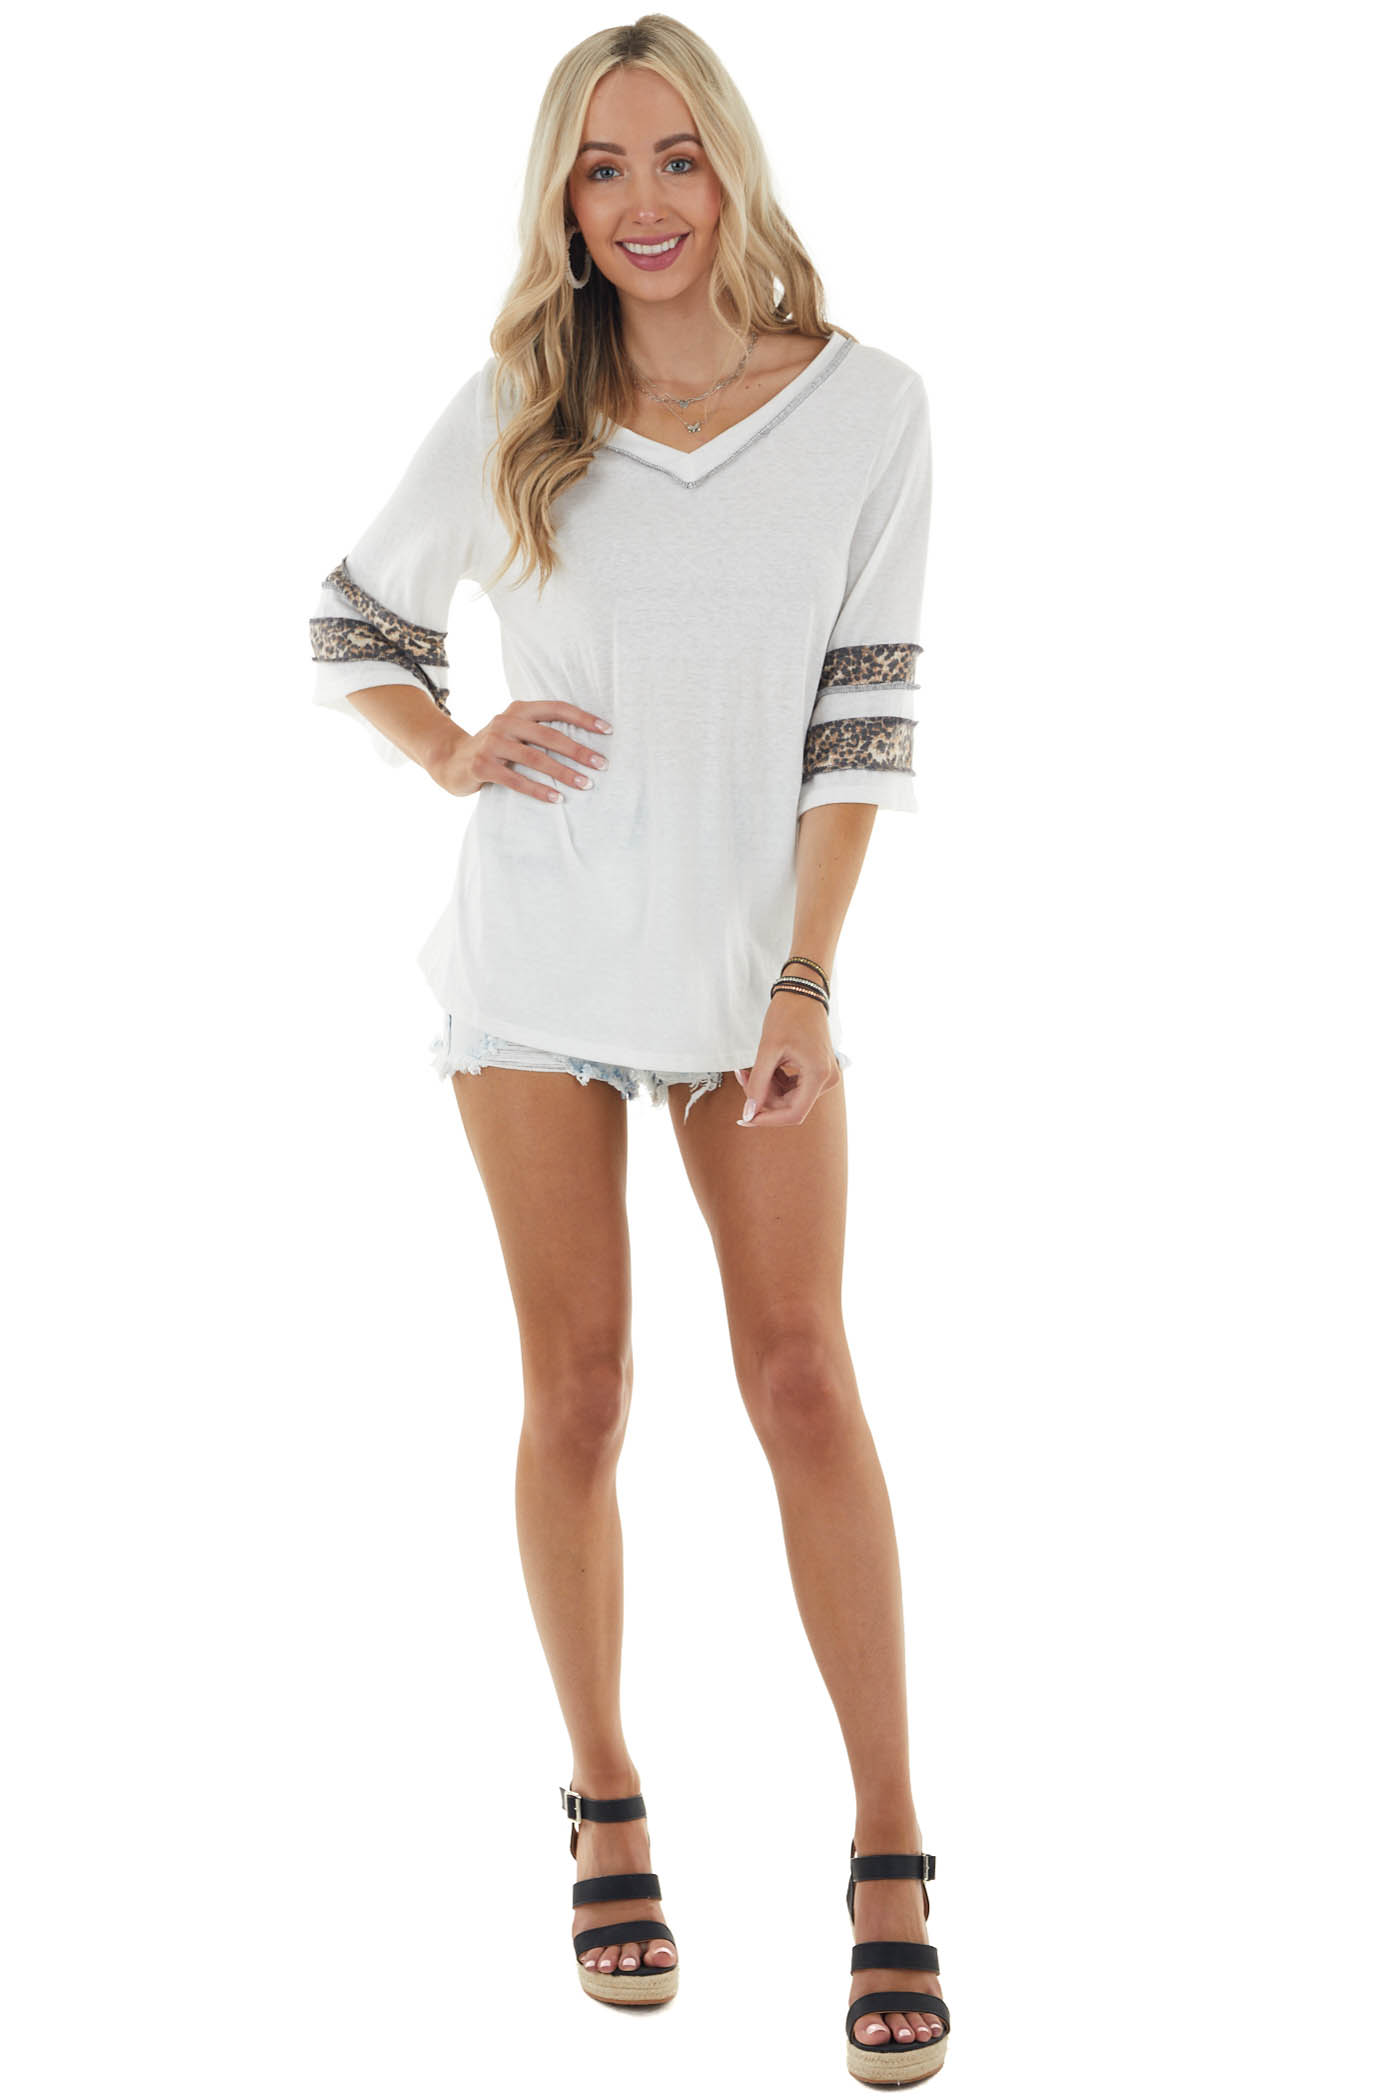 Off White Leopard 3/4 Sleeve Knit Top with Outseam Details